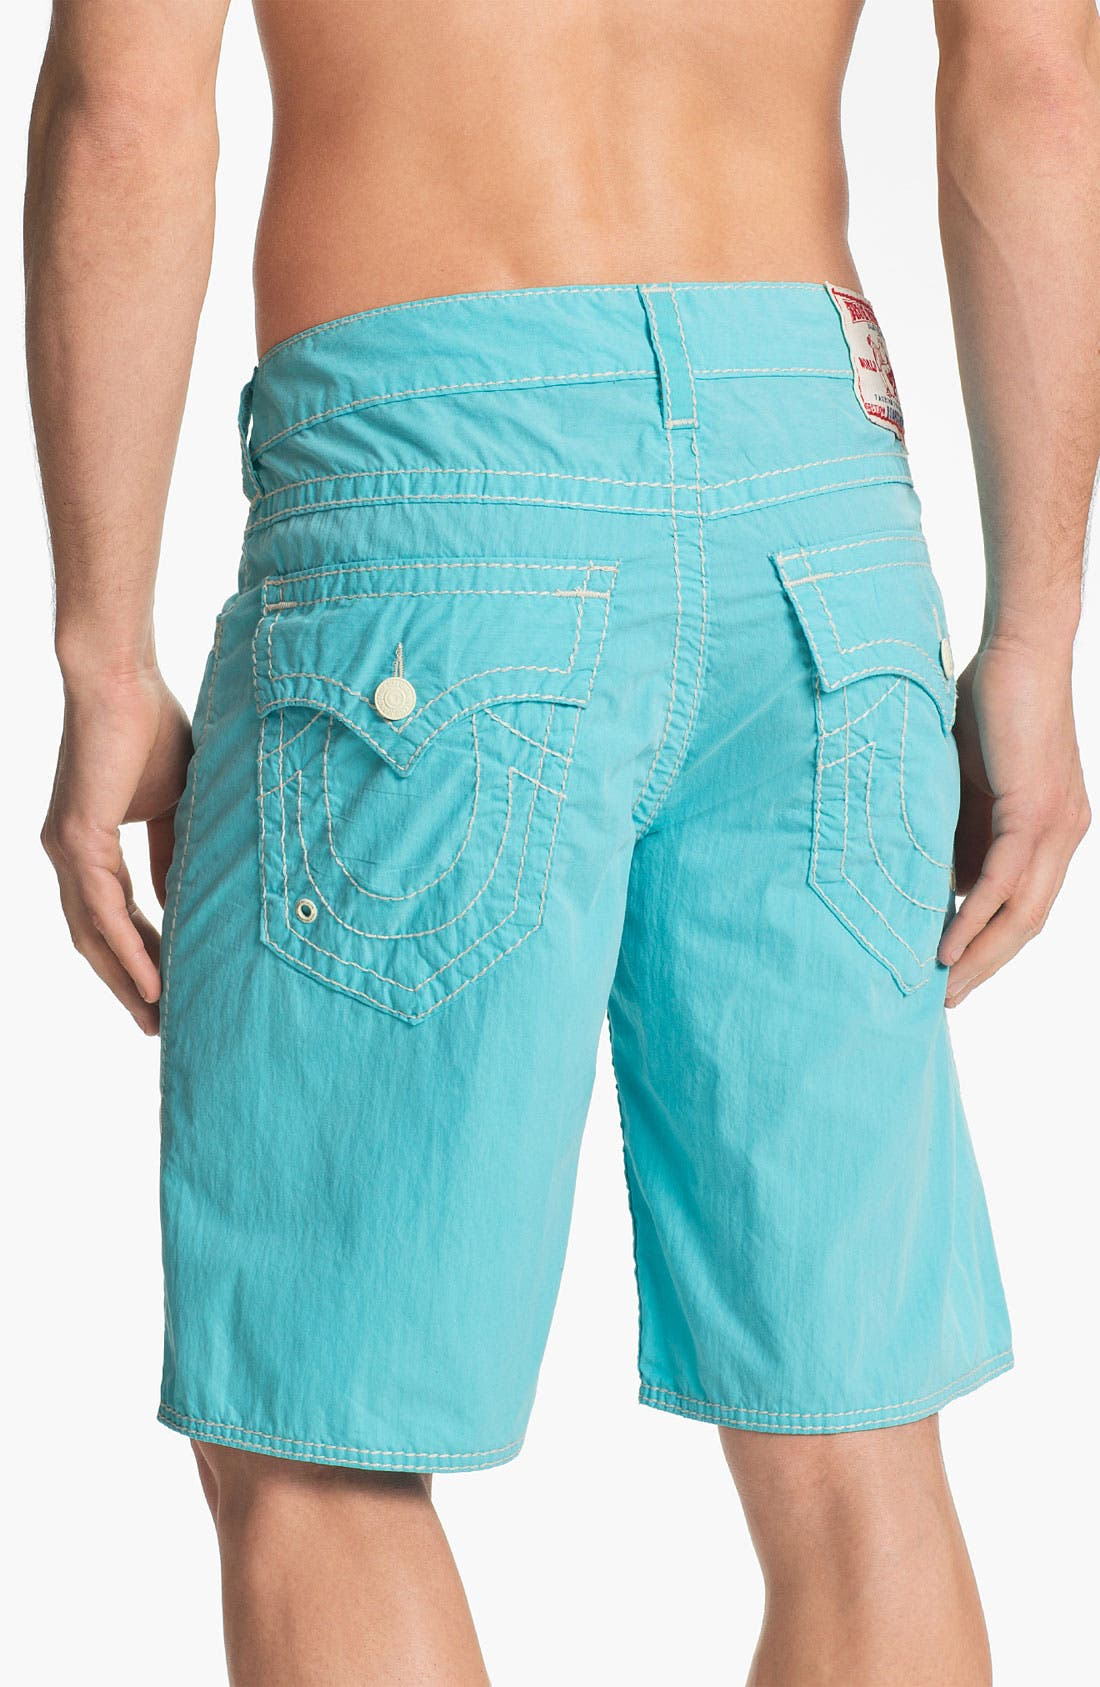 Alternate Image 1 Selected - True Religion Brand Jeans 'Big T' Board Shorts